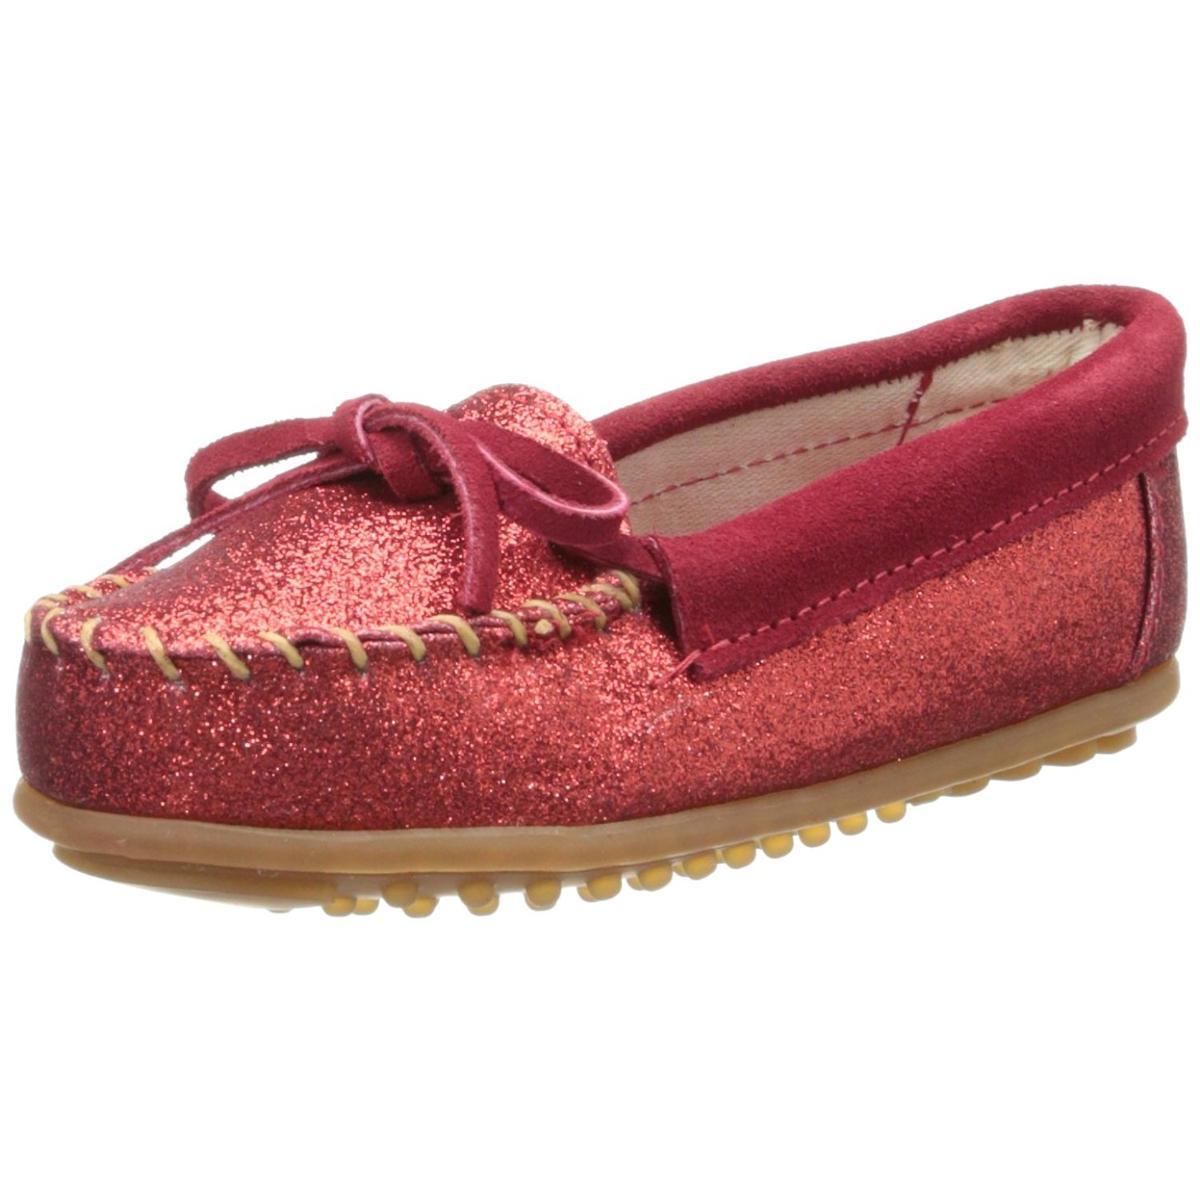 Minnetonka Girls Red Glitter Moccasin by Minnetonka